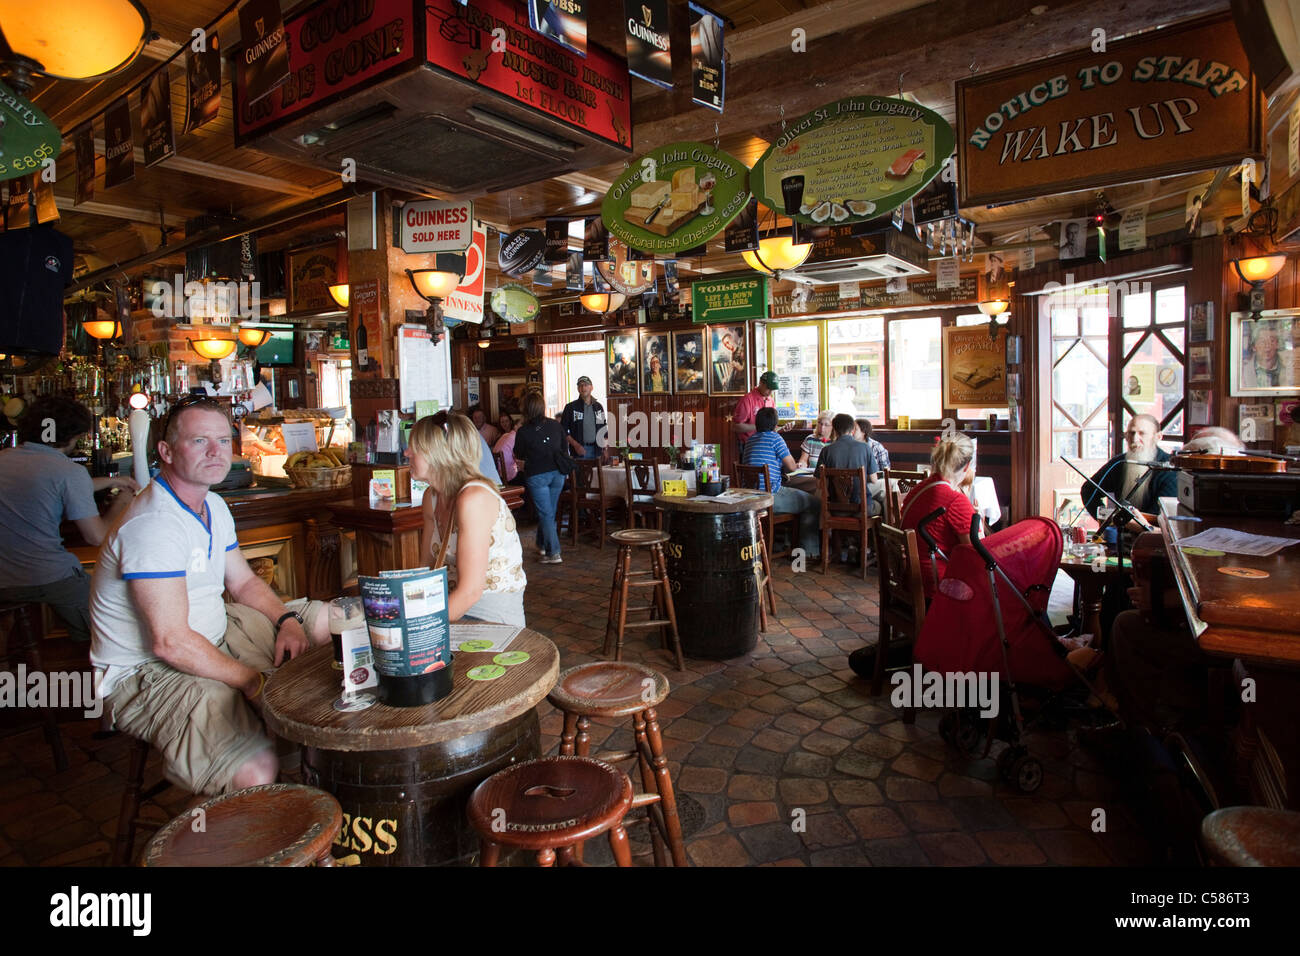 republic of ireland ireland dublin temple bar pub pubs irish stock photo royalty free. Black Bedroom Furniture Sets. Home Design Ideas